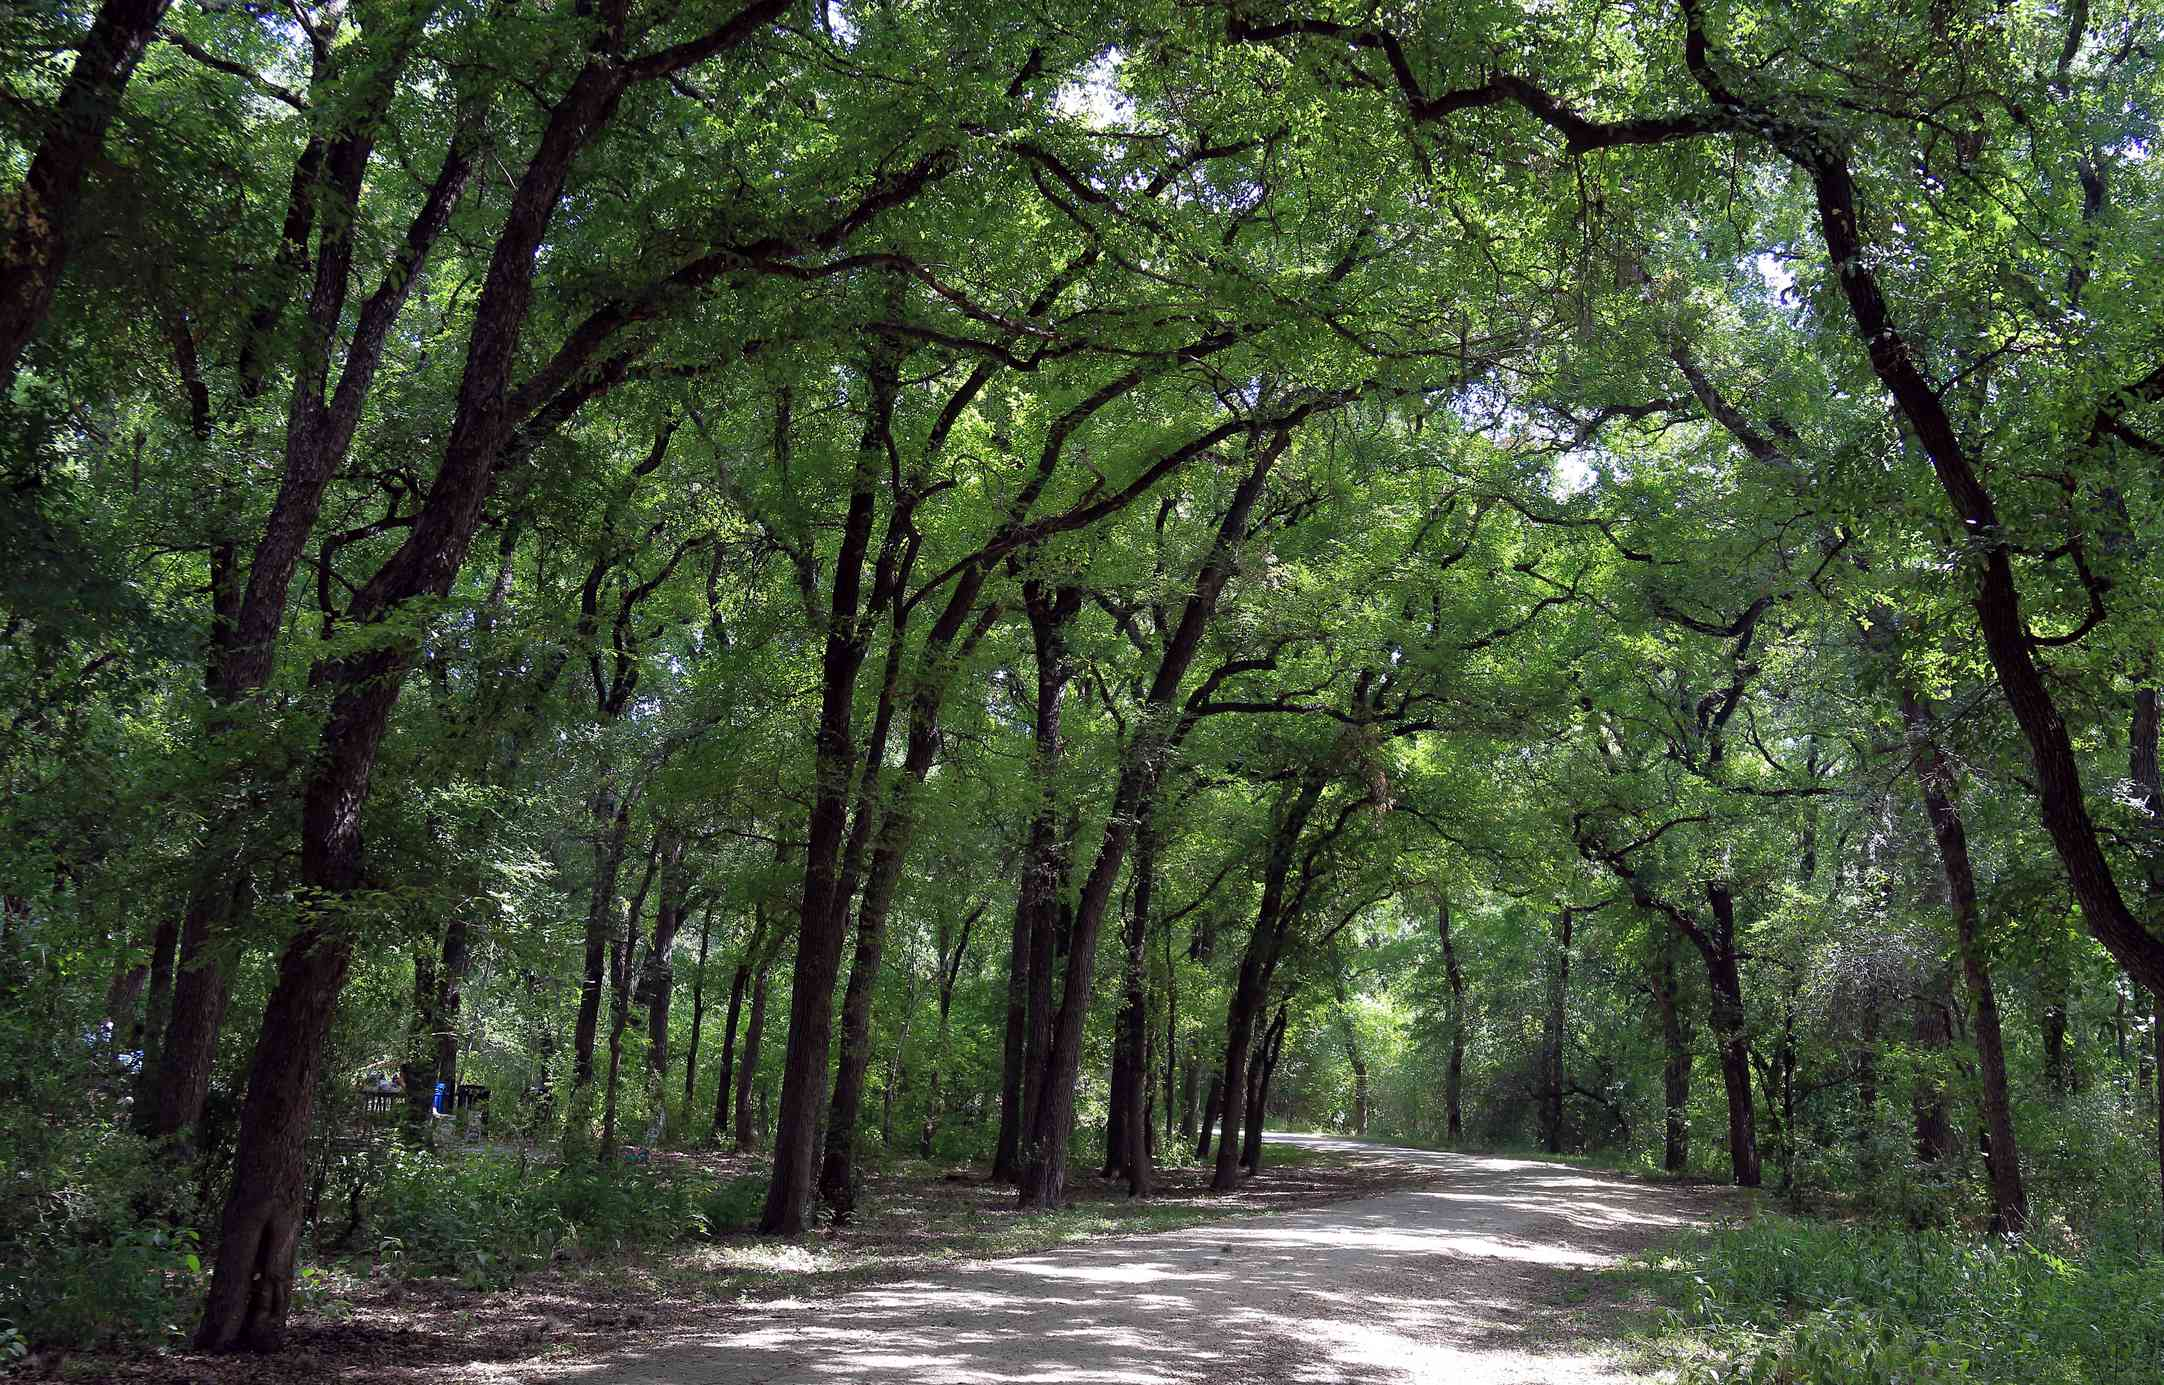 Scenic trail in Mayfield park with trees creating a canopy over it